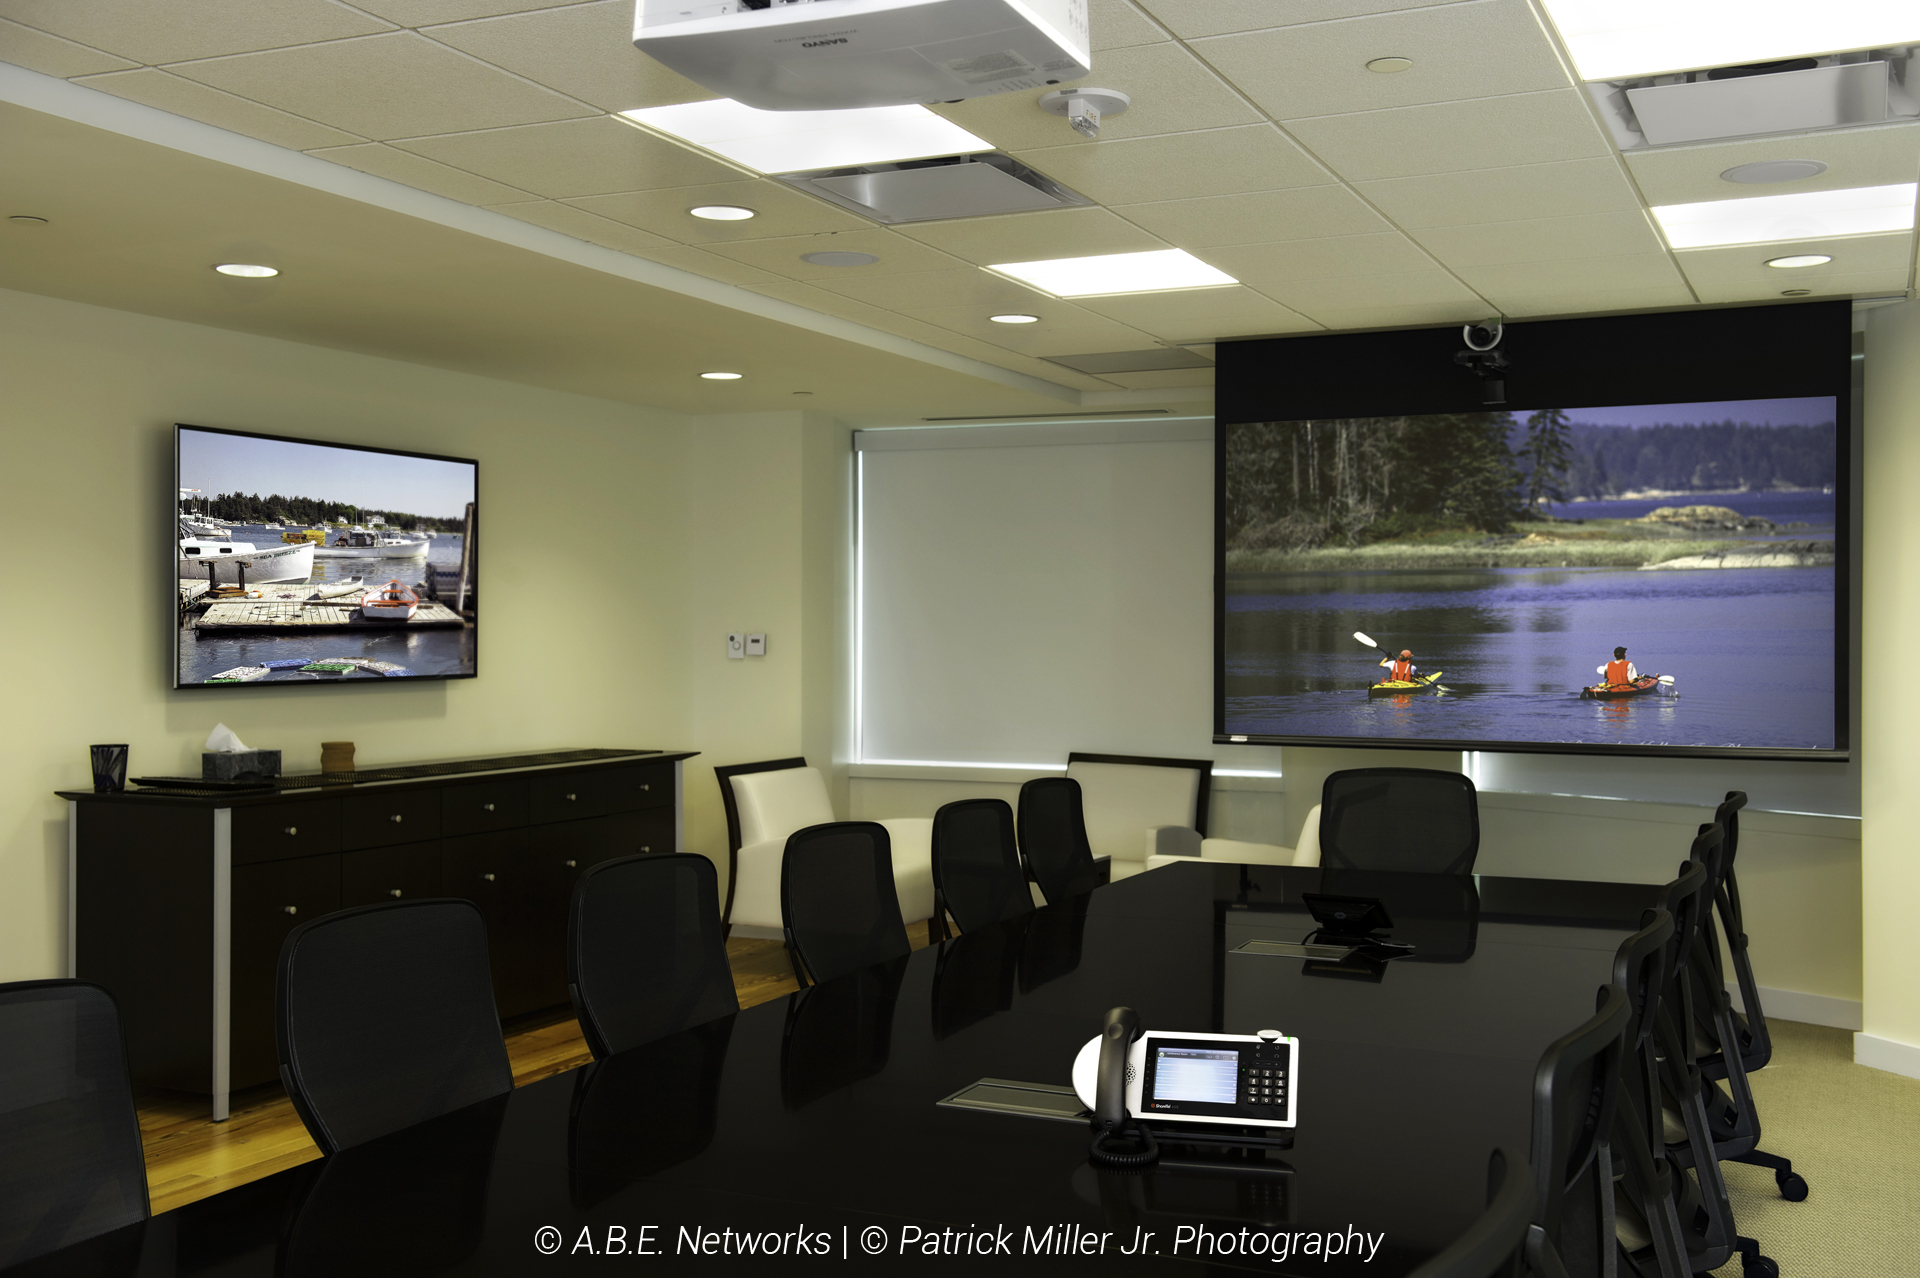 Executive Conference Room with Projector and Mounted TV